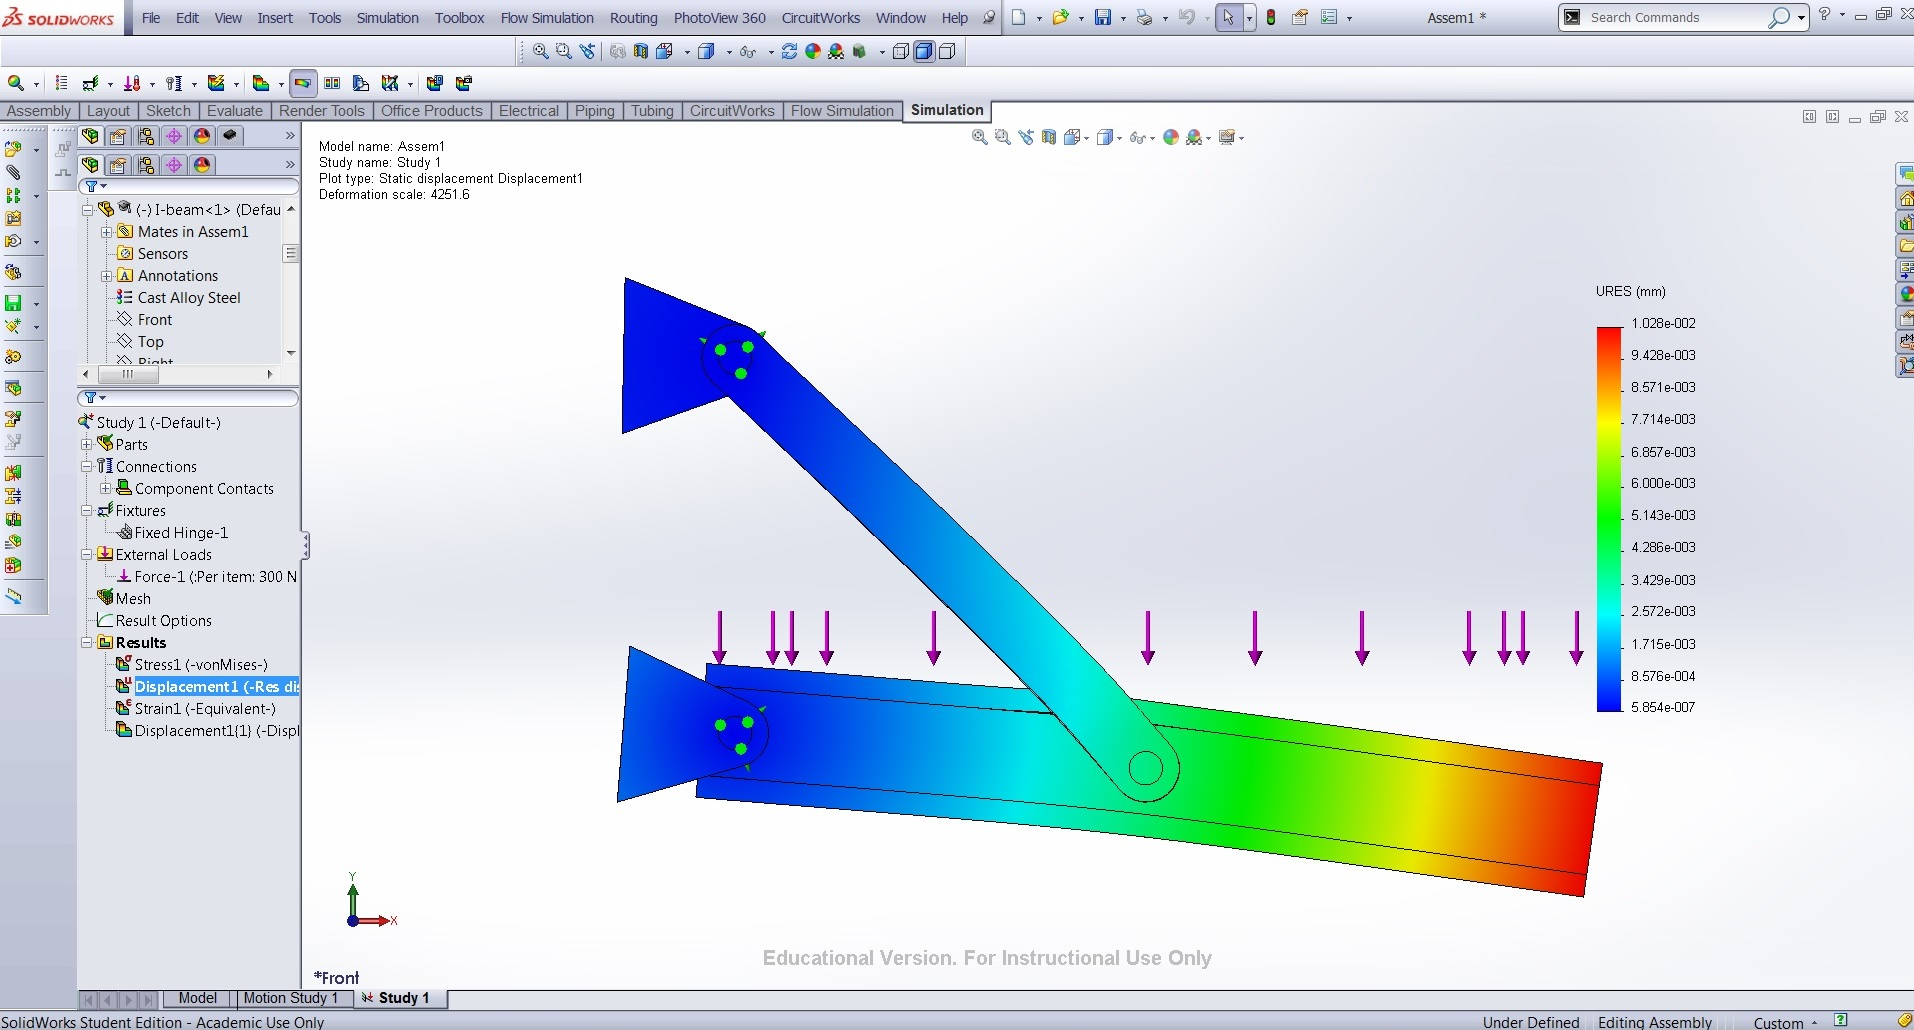 Use Solidworks in Stress Analysis - Measure Stresses